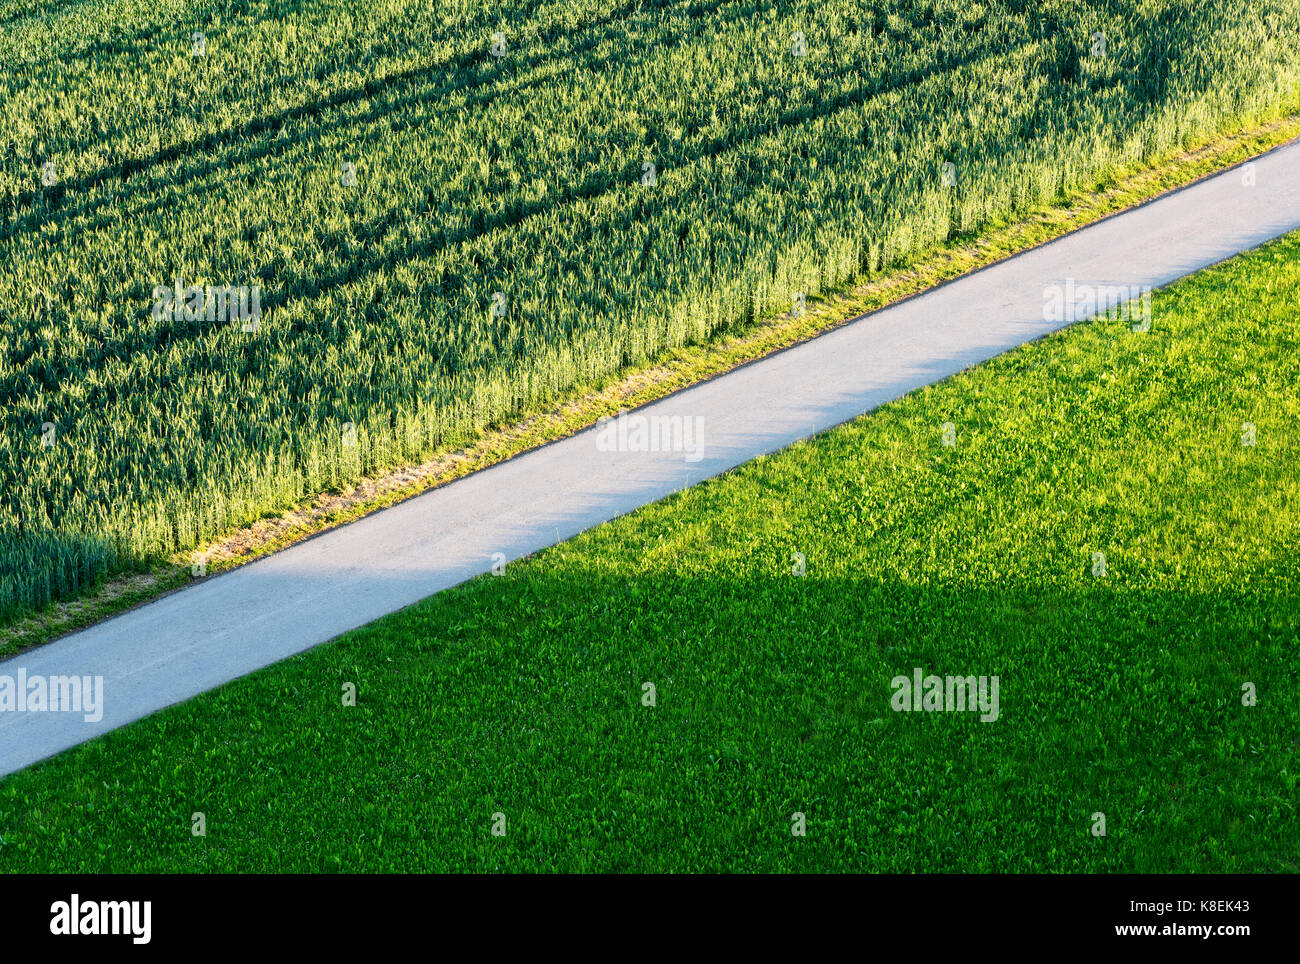 Road through green agricultural fields - Stock Image